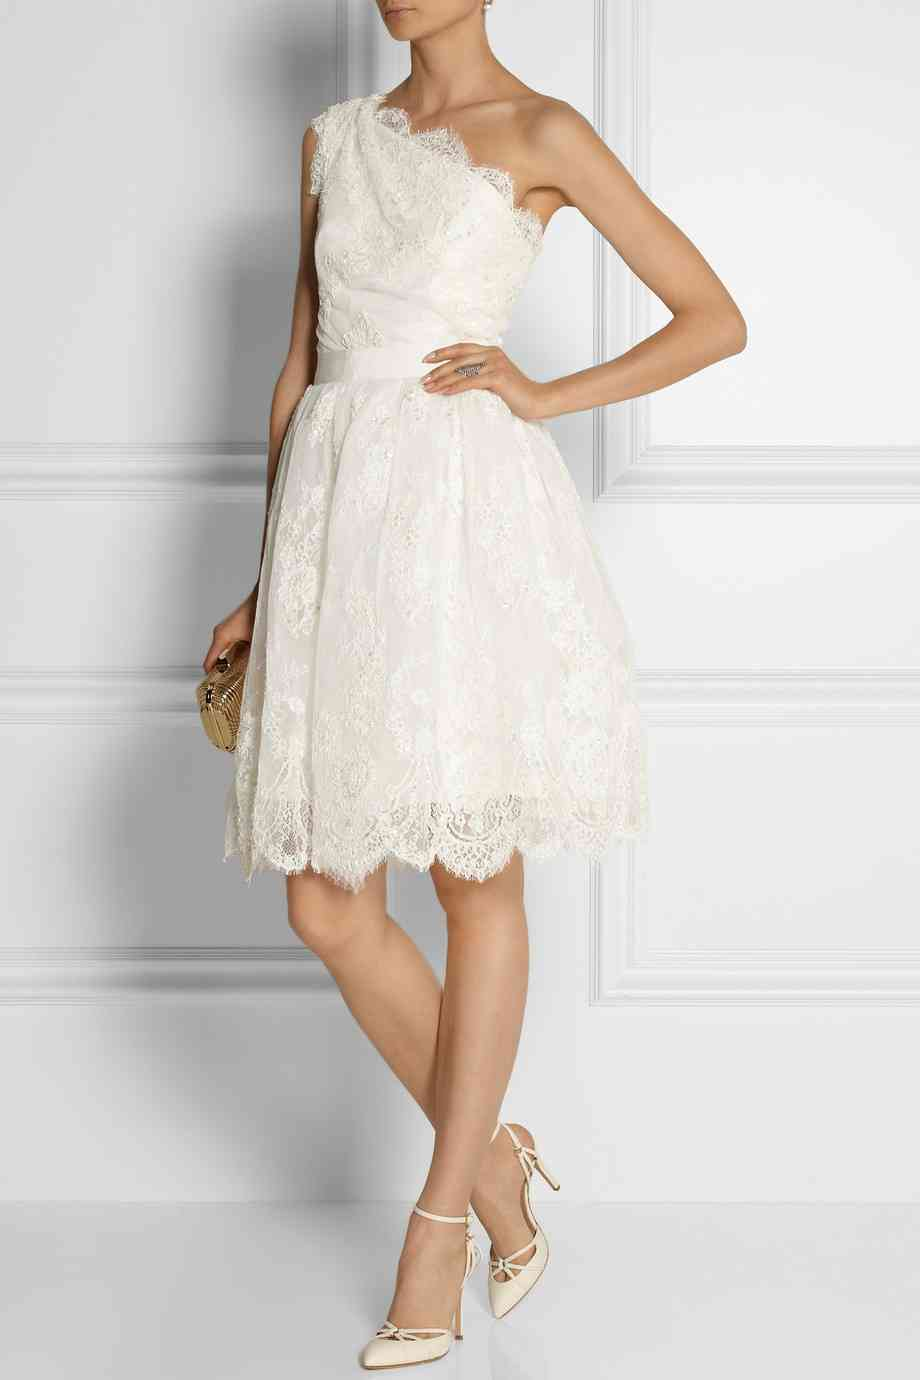 Marchesa one shoulder dress via Net-a-Porter